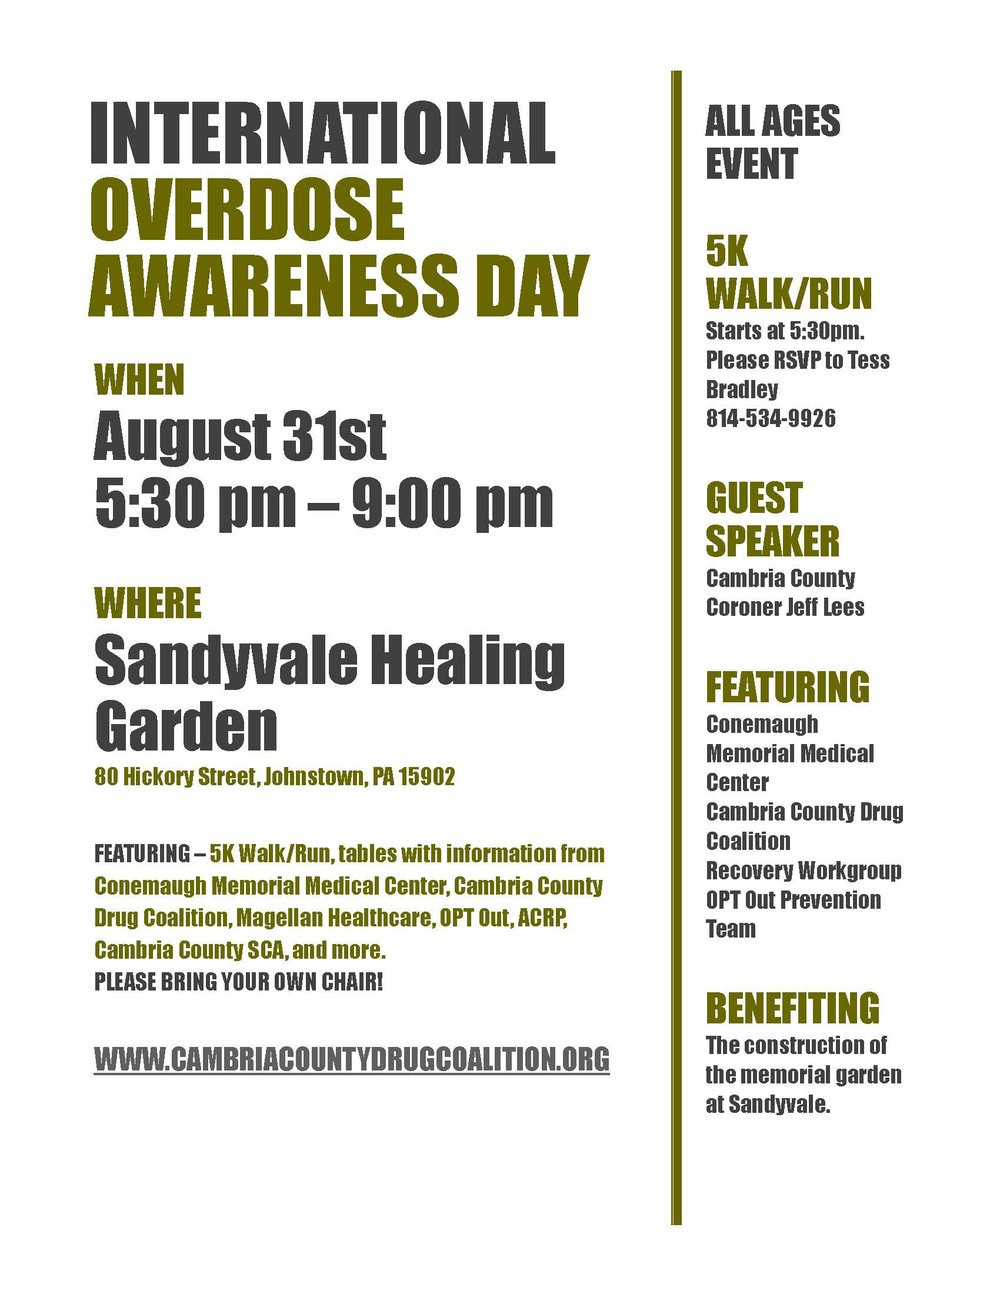 International overdose awareness day flyer.jpg